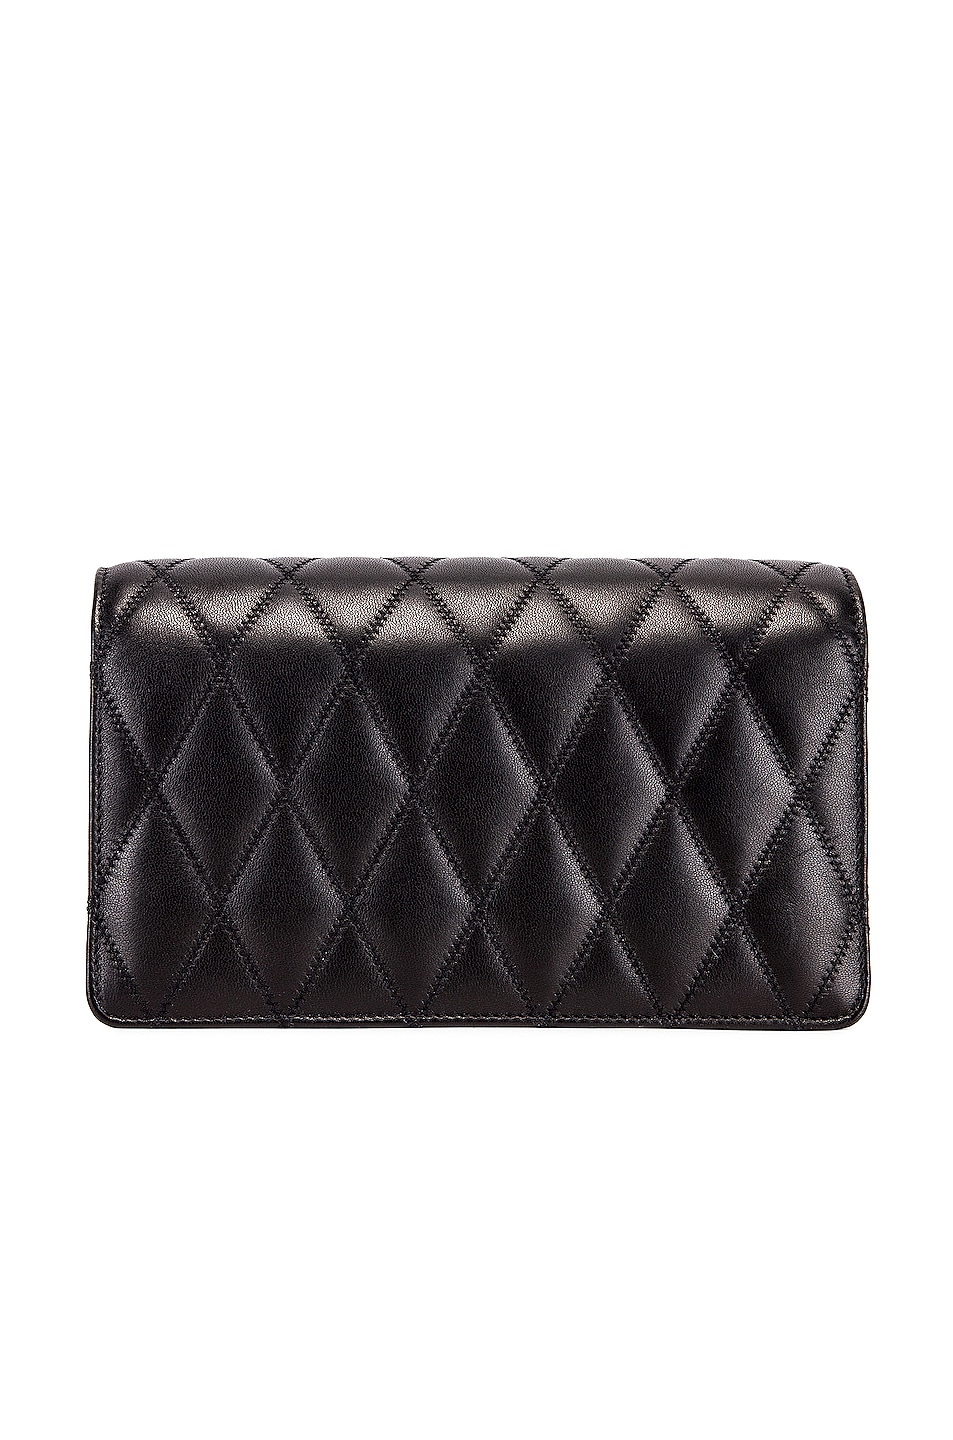 Image 3 of Saint Laurent Angie Chain Bag in Black